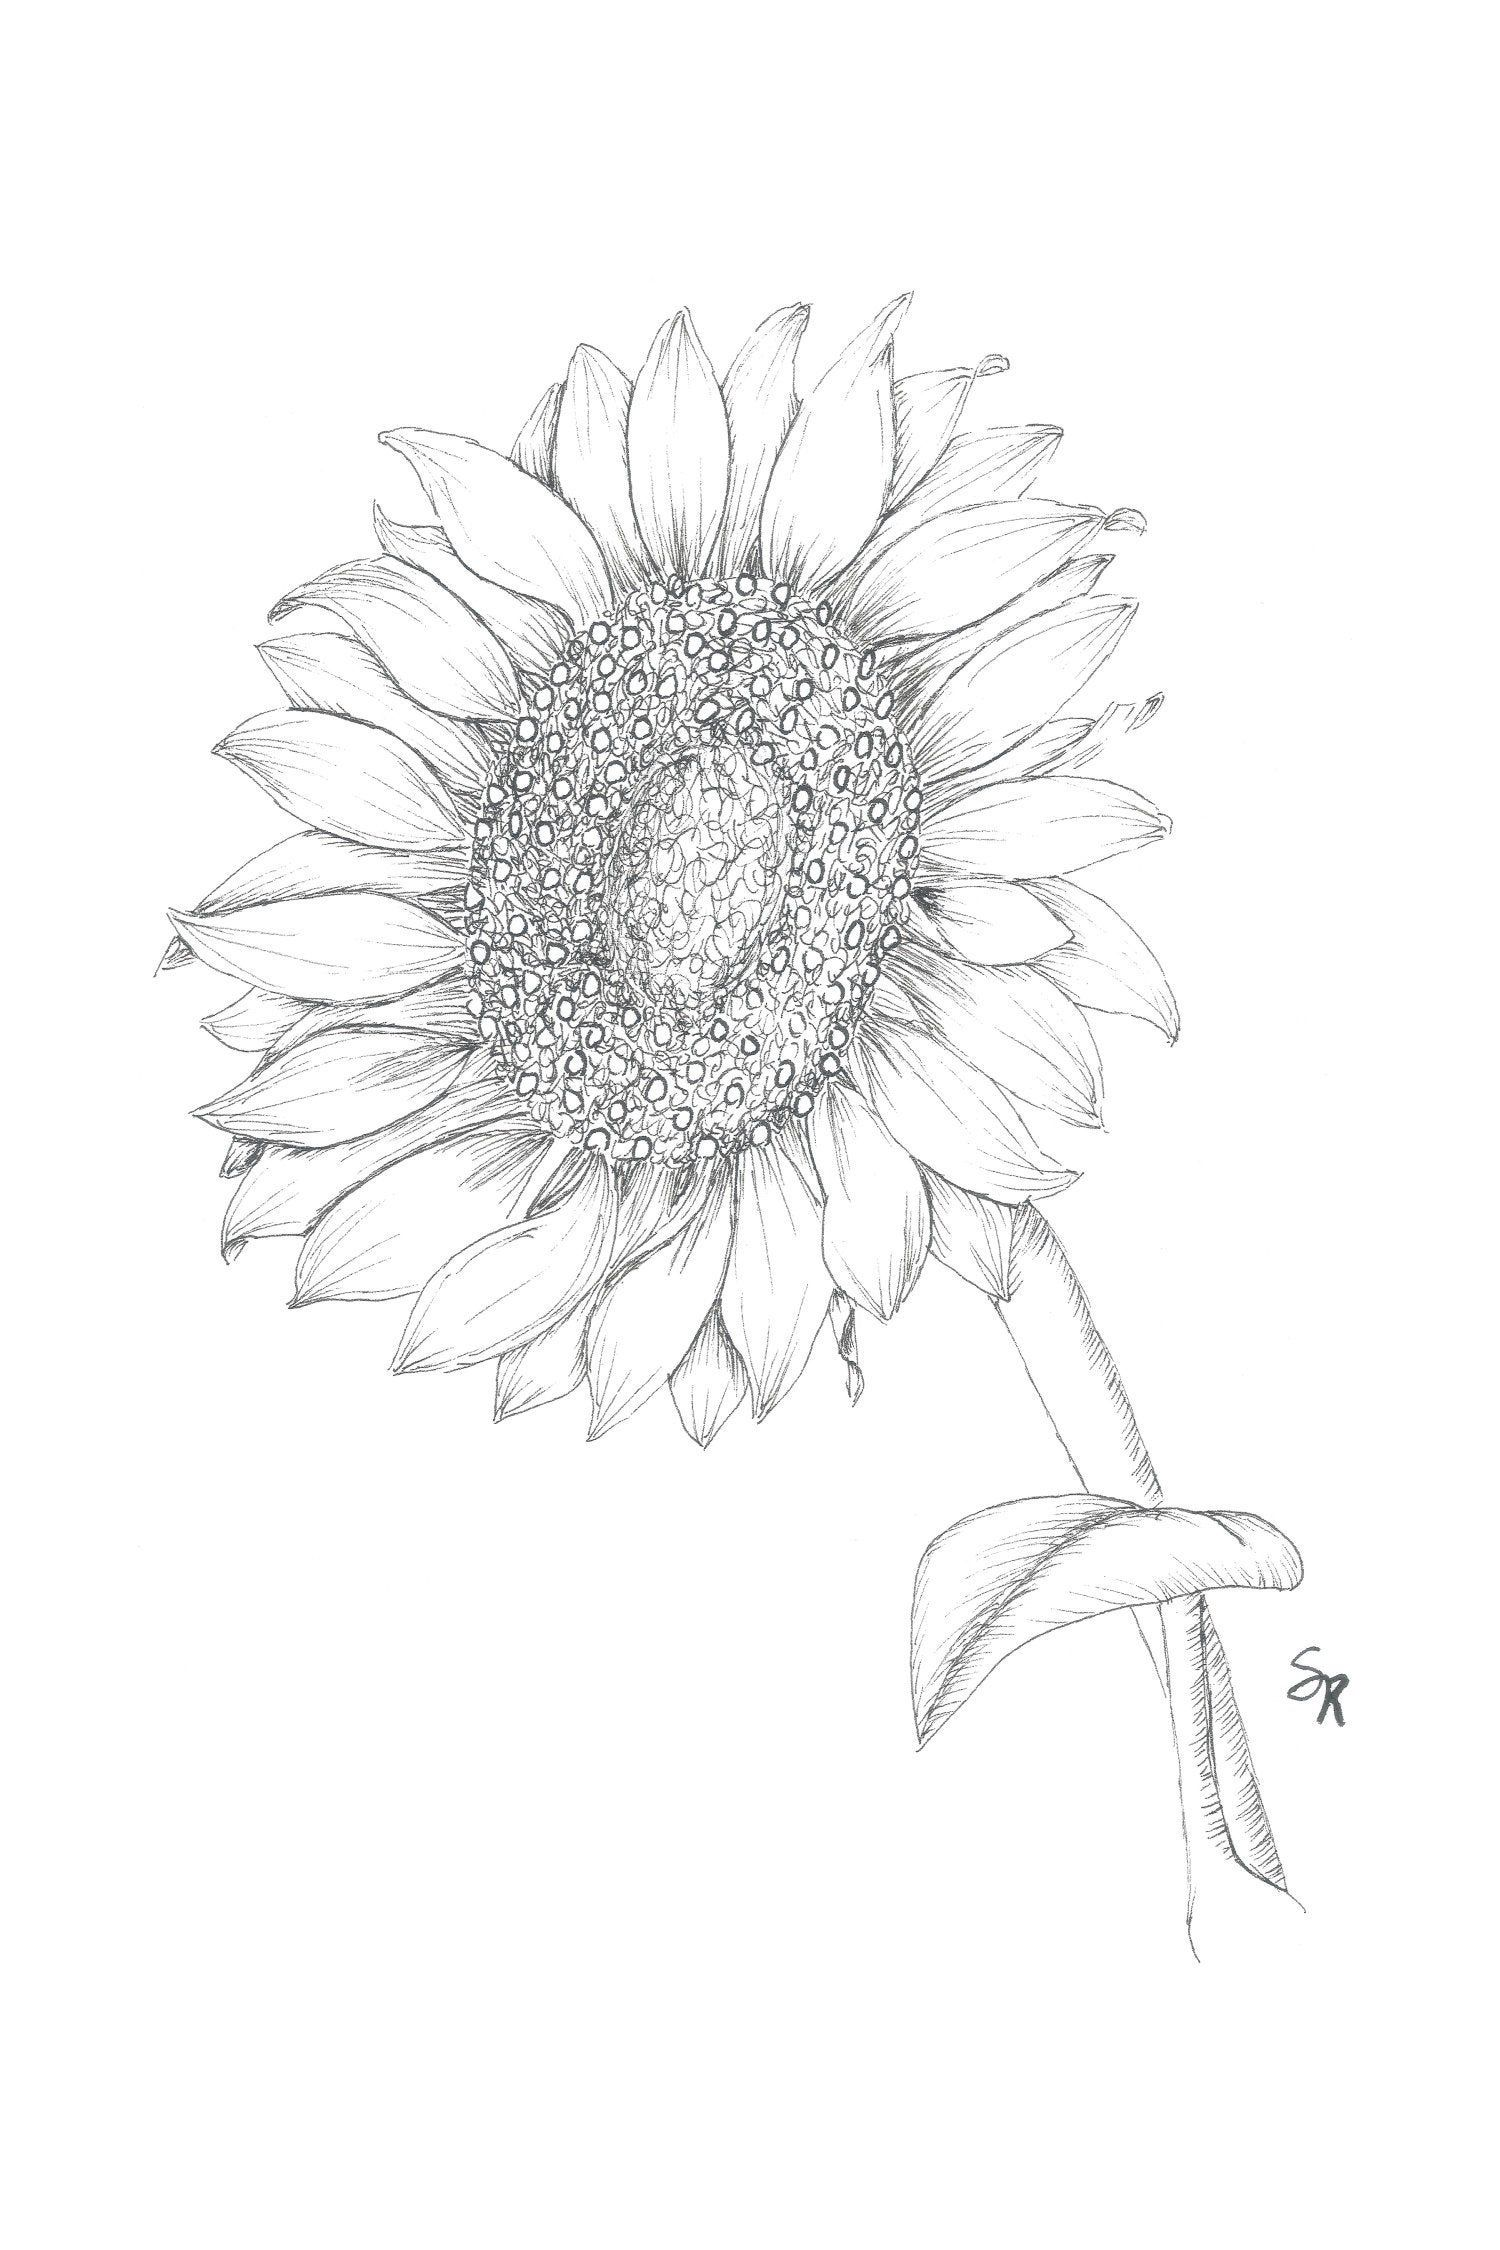 Sunflower, floral ink drawing, black and white drawing